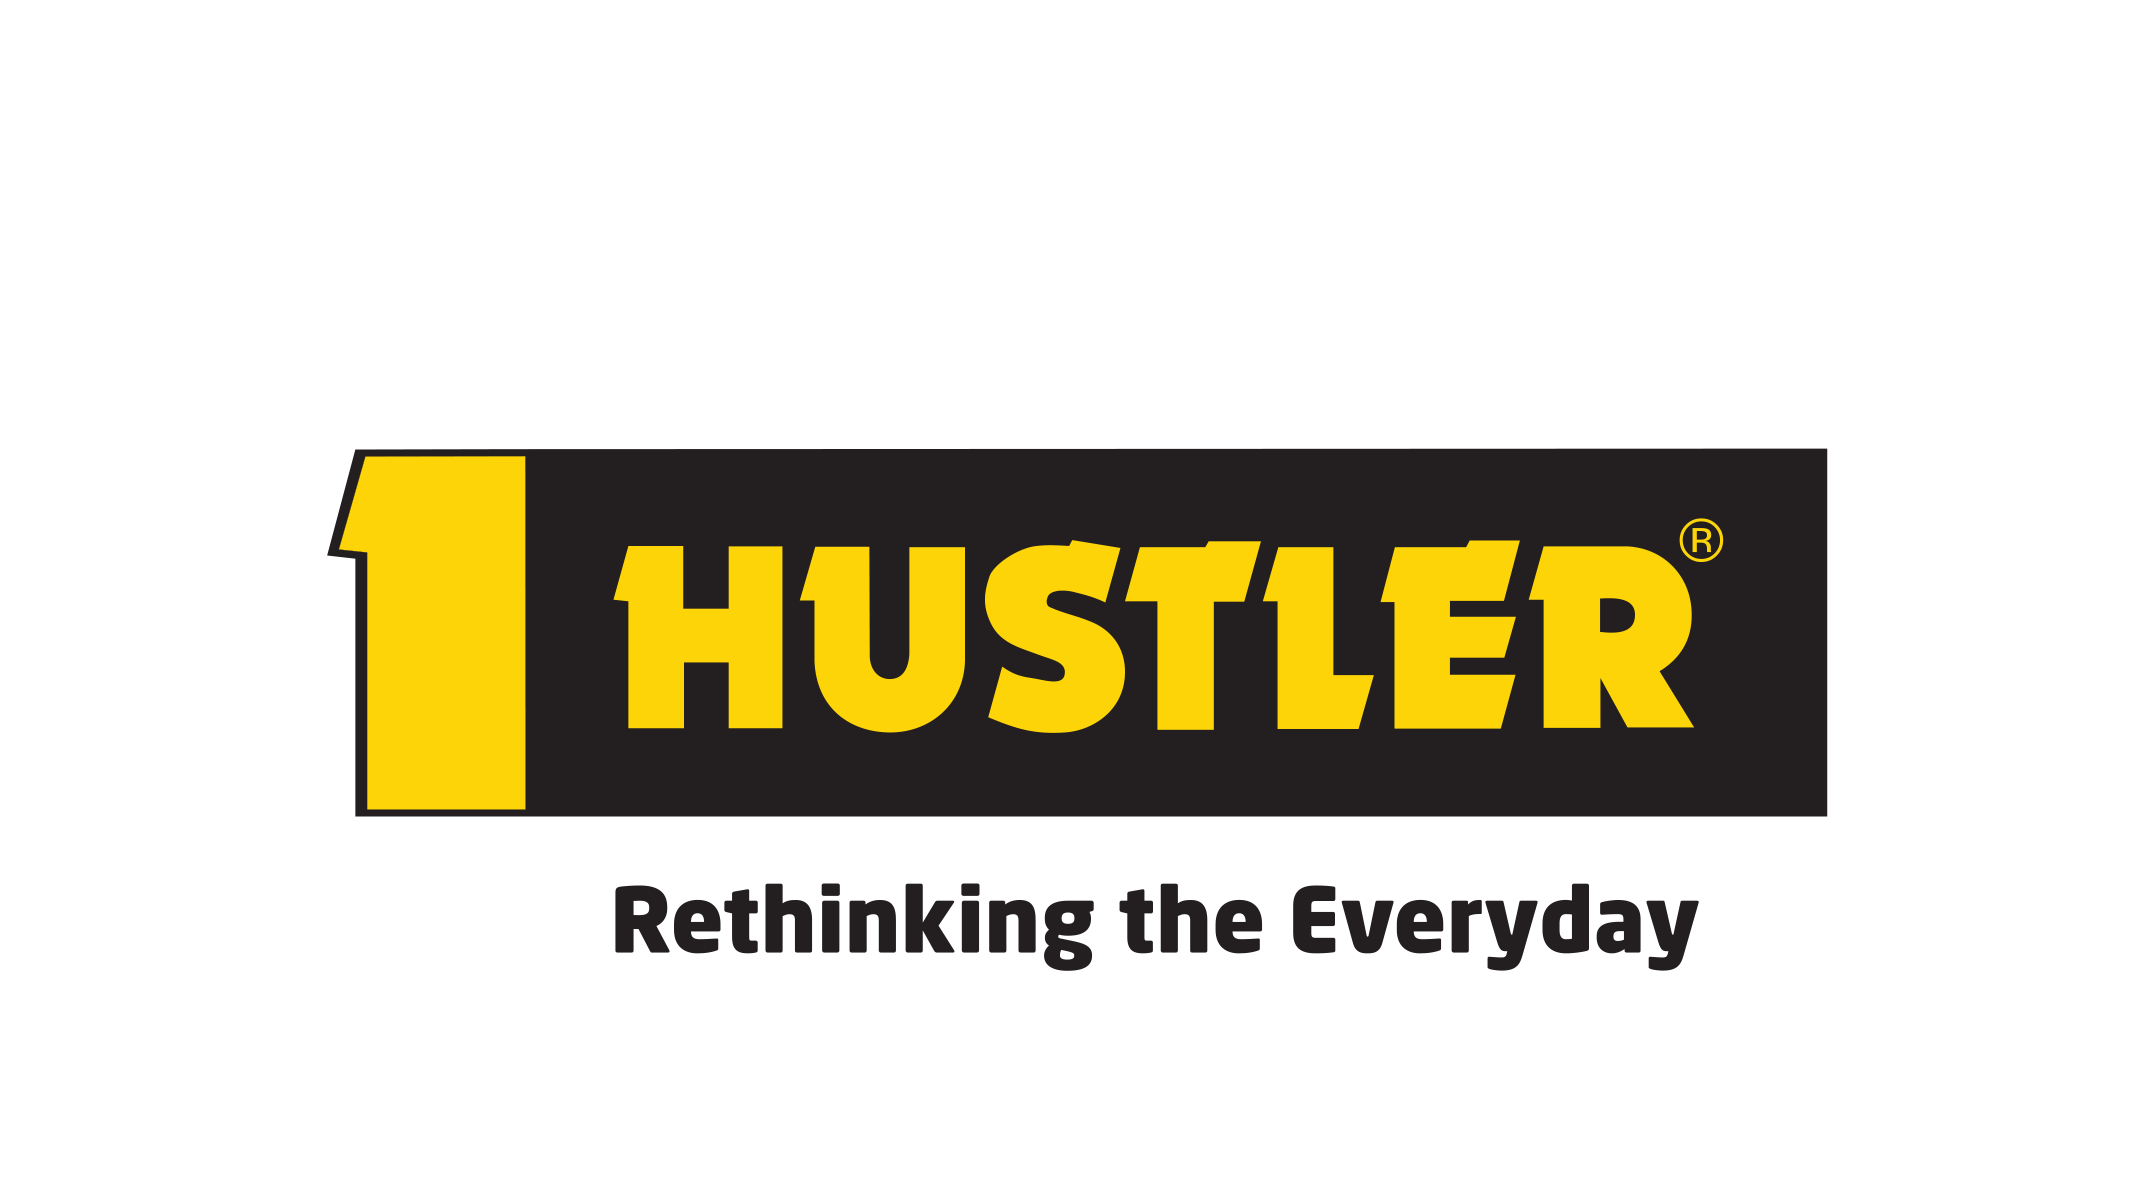 hustler implements Logo